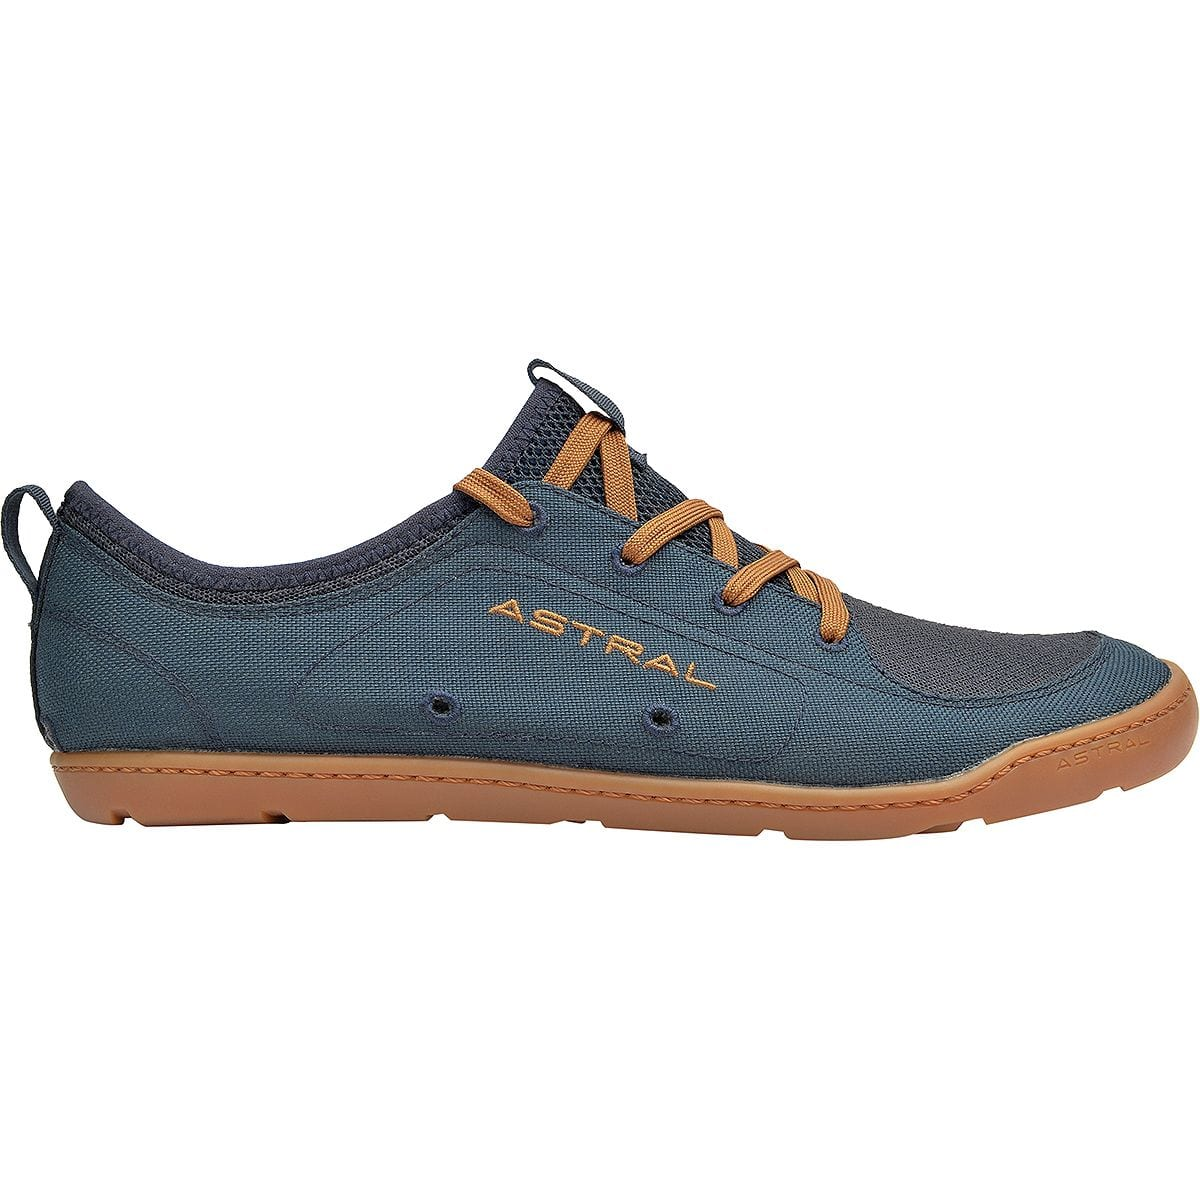 Astral Loyak Water Shoes 75% off at Backcountry,  $22.50, and more